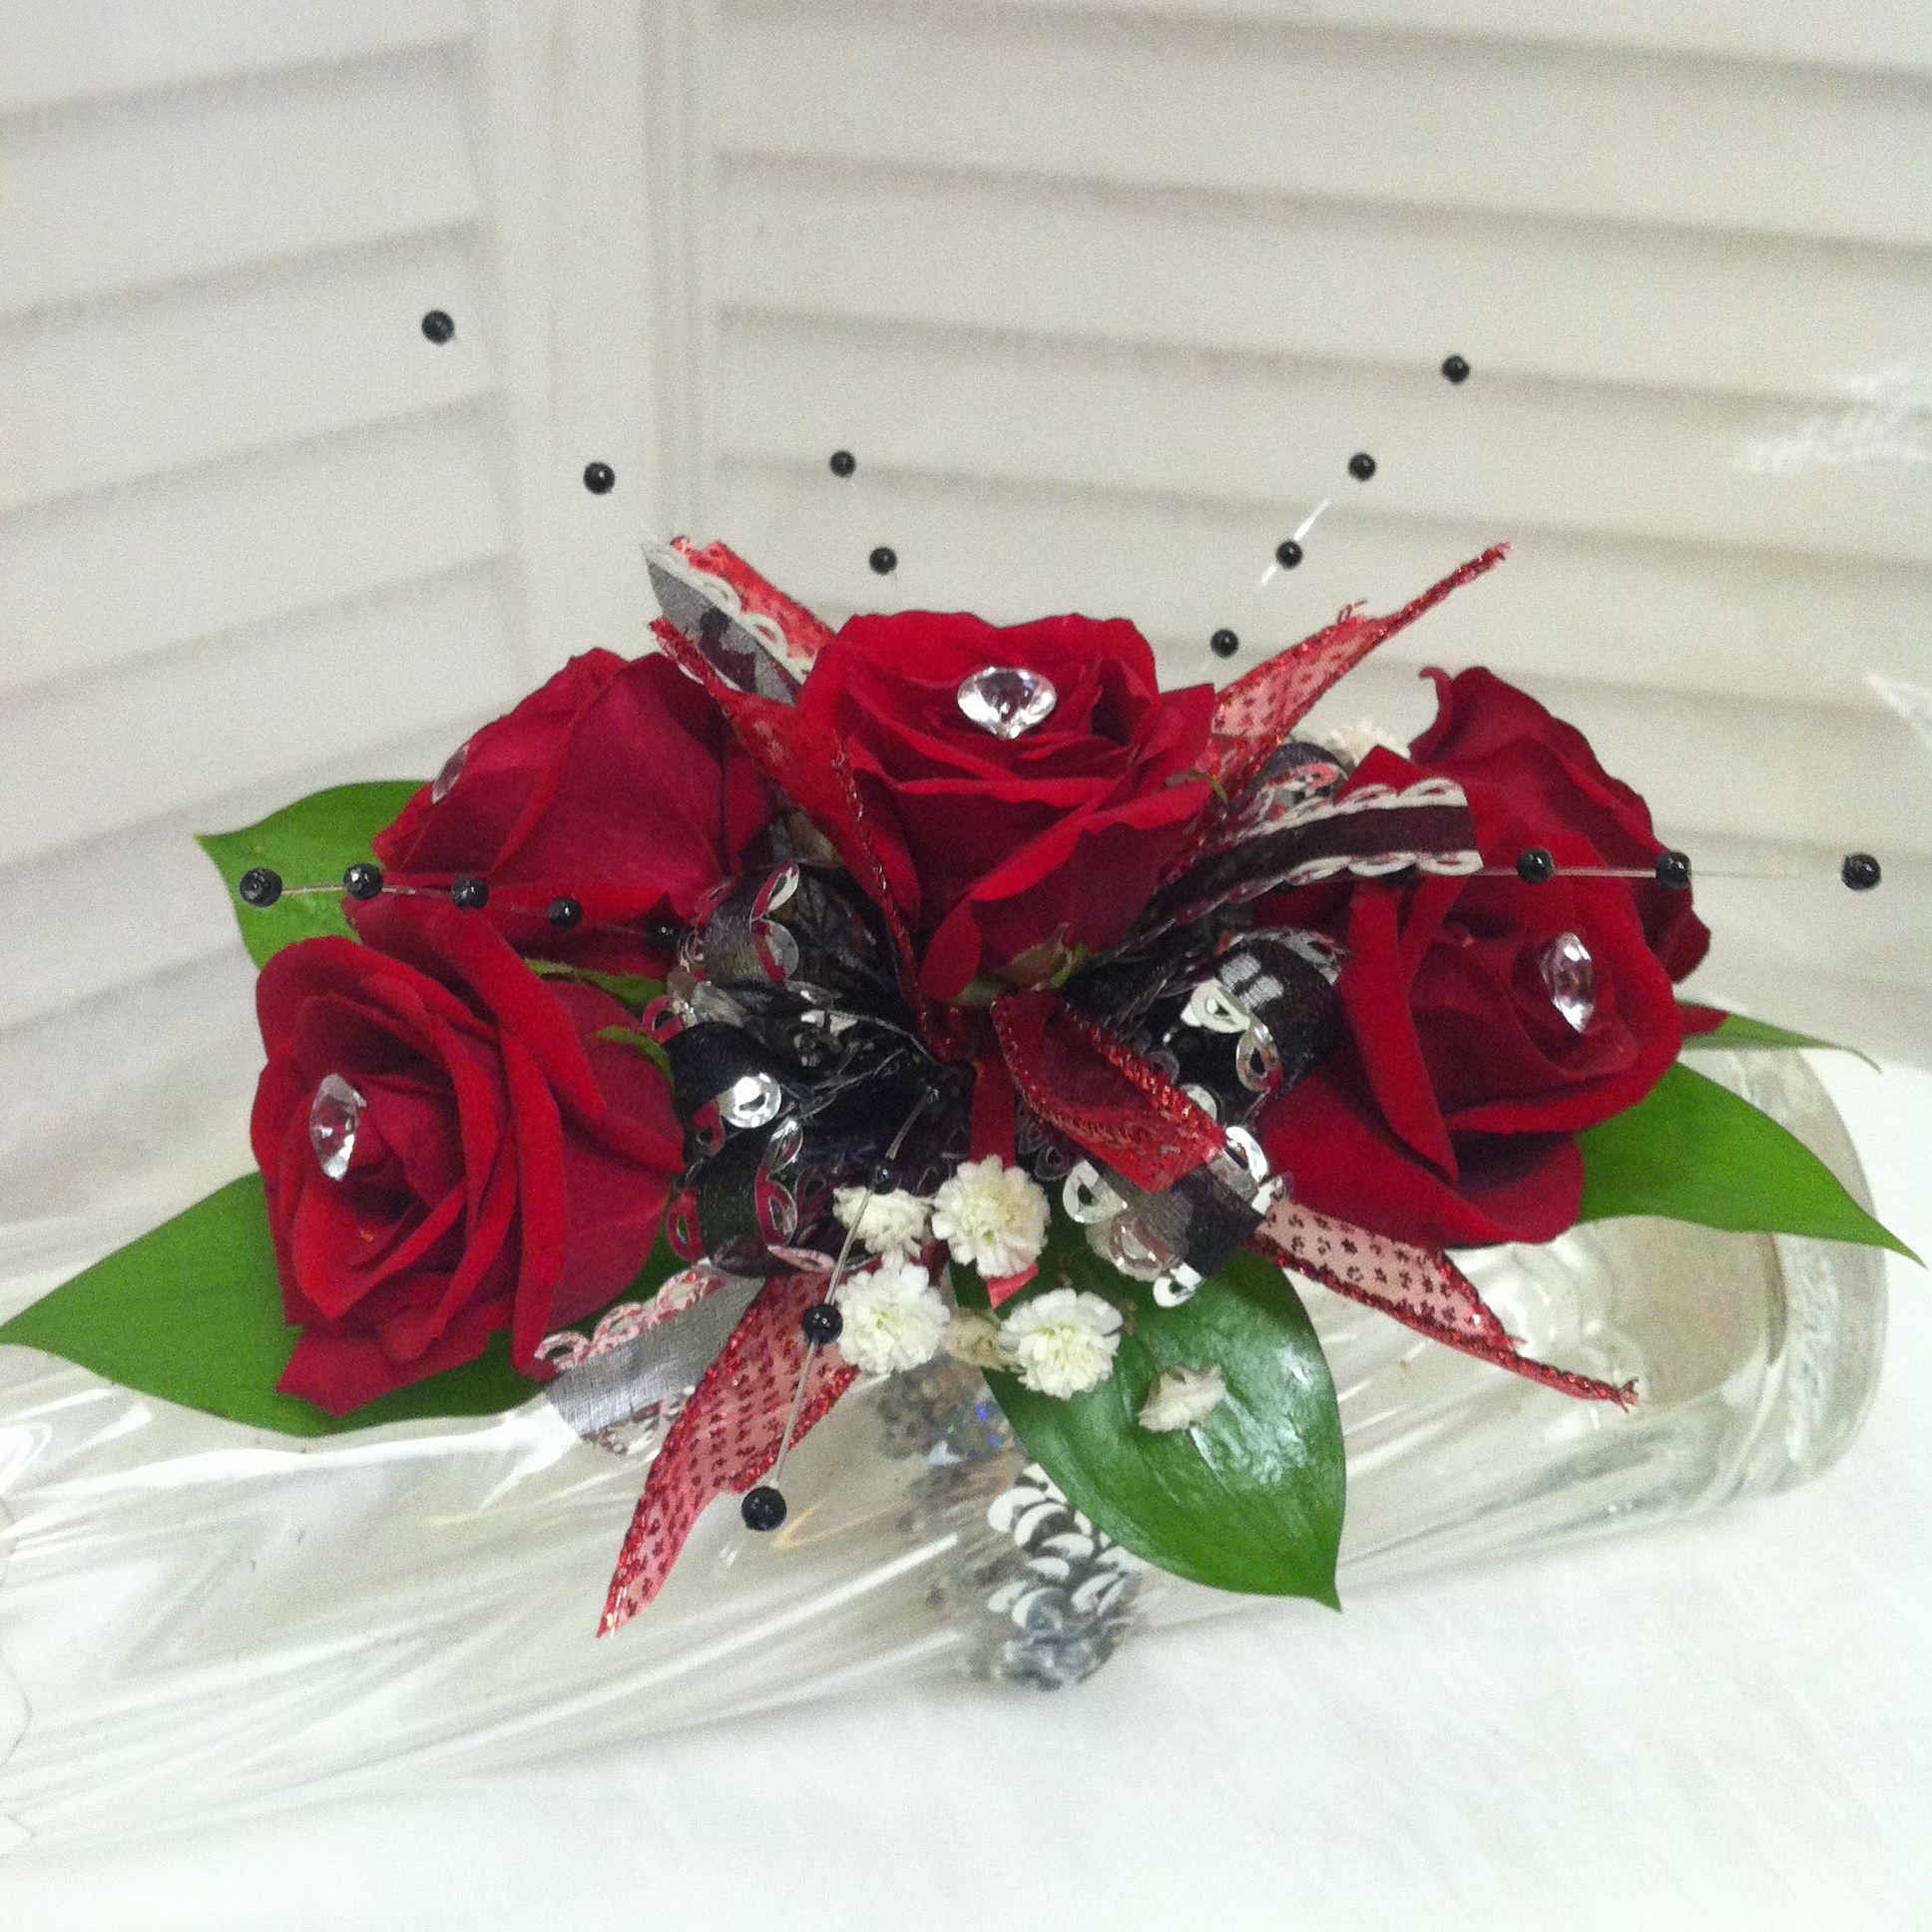 Standard Corsage (25) with Beads (1) and Upgraded Bow (2) $28